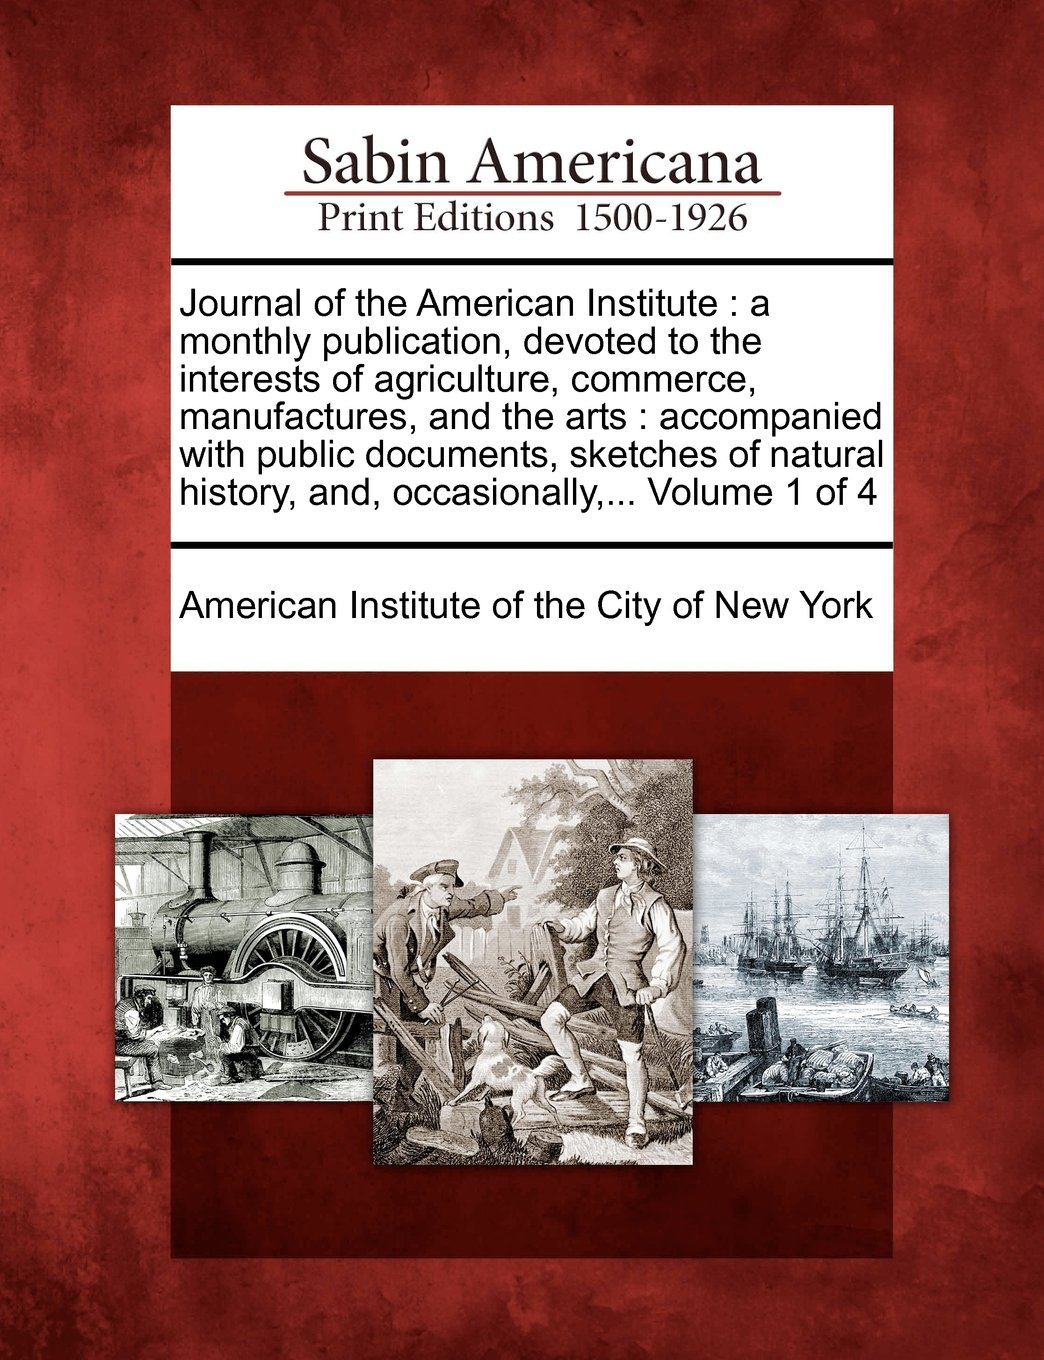 Download Journal of the American Institute: a monthly publication, devoted to the interests of agriculture, commerce, manufactures, and the arts : accompanied ... history, and, occasionally,... Volume 1 of 4 PDF